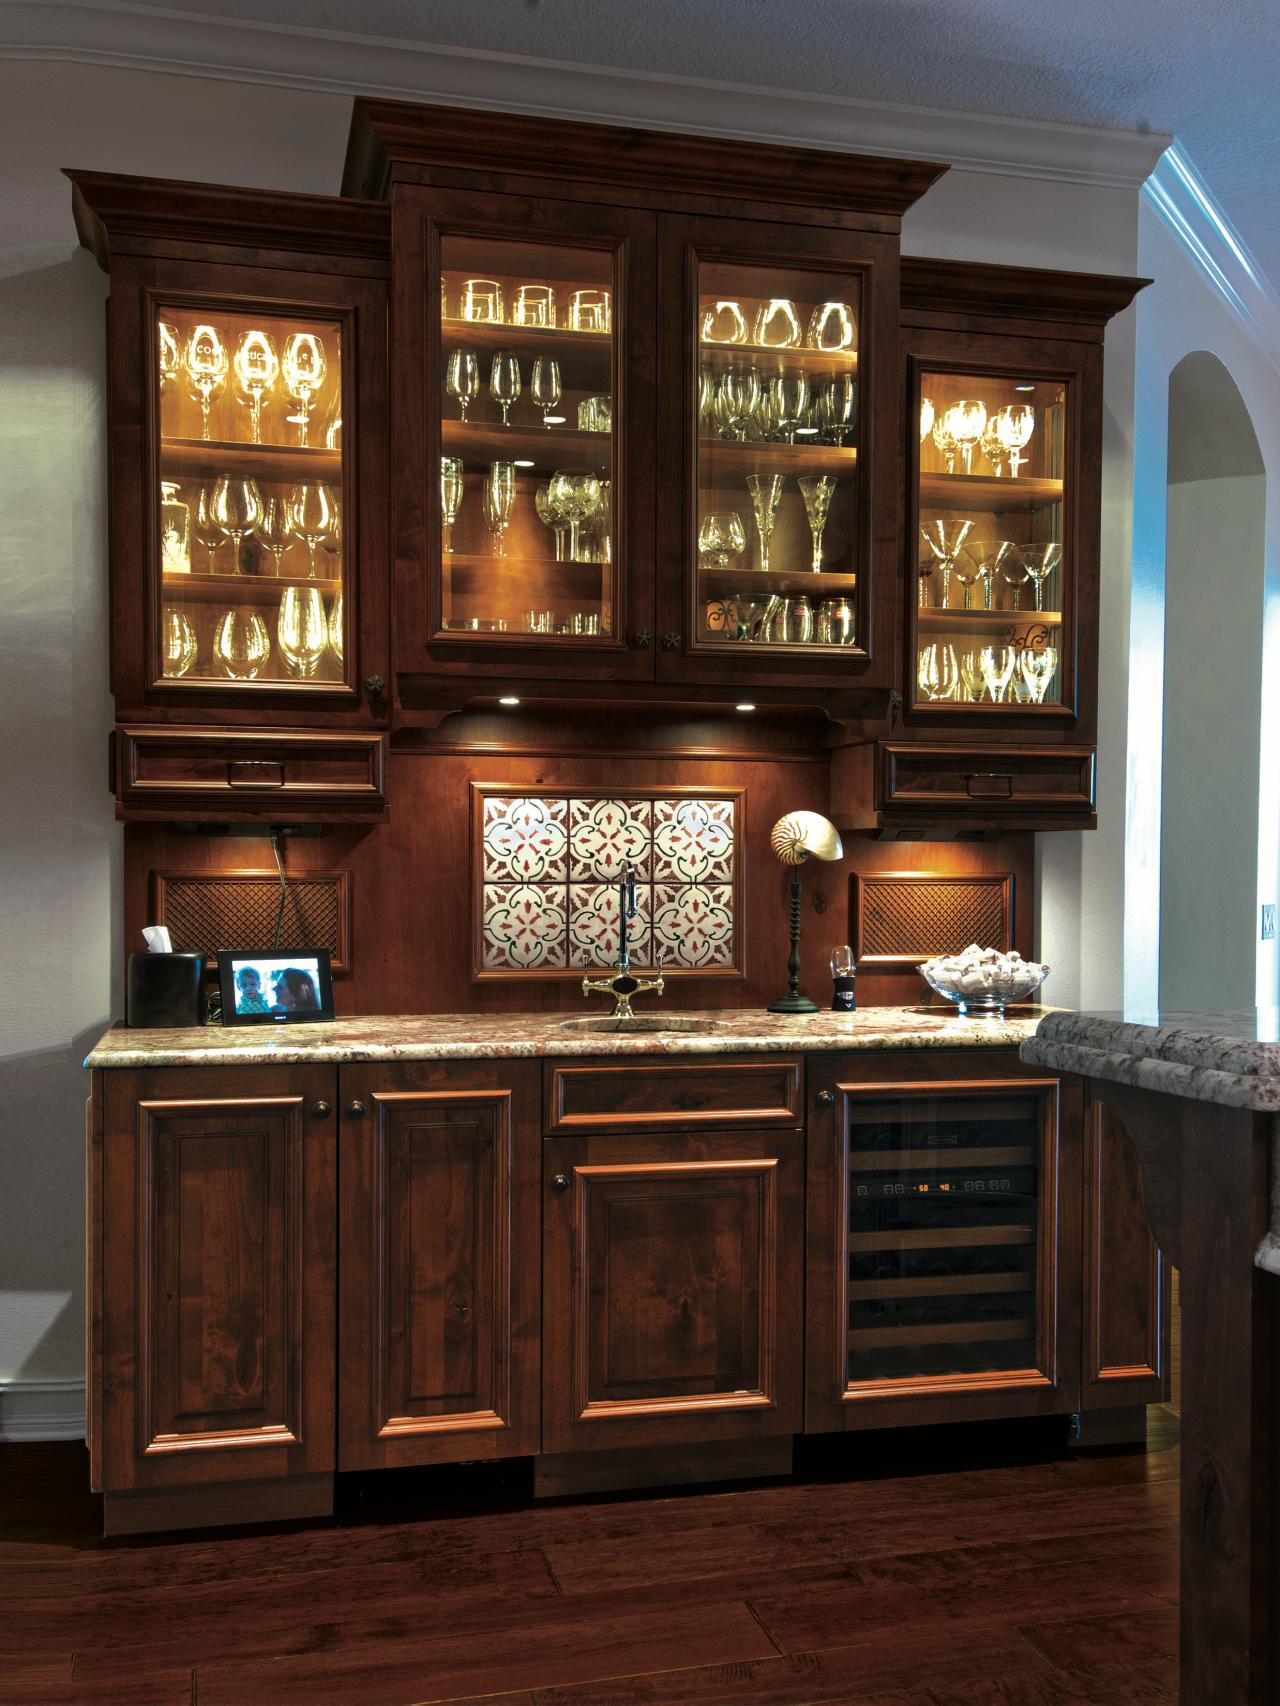 The Entertainers Guide To Designing The Perfect Wet Bar